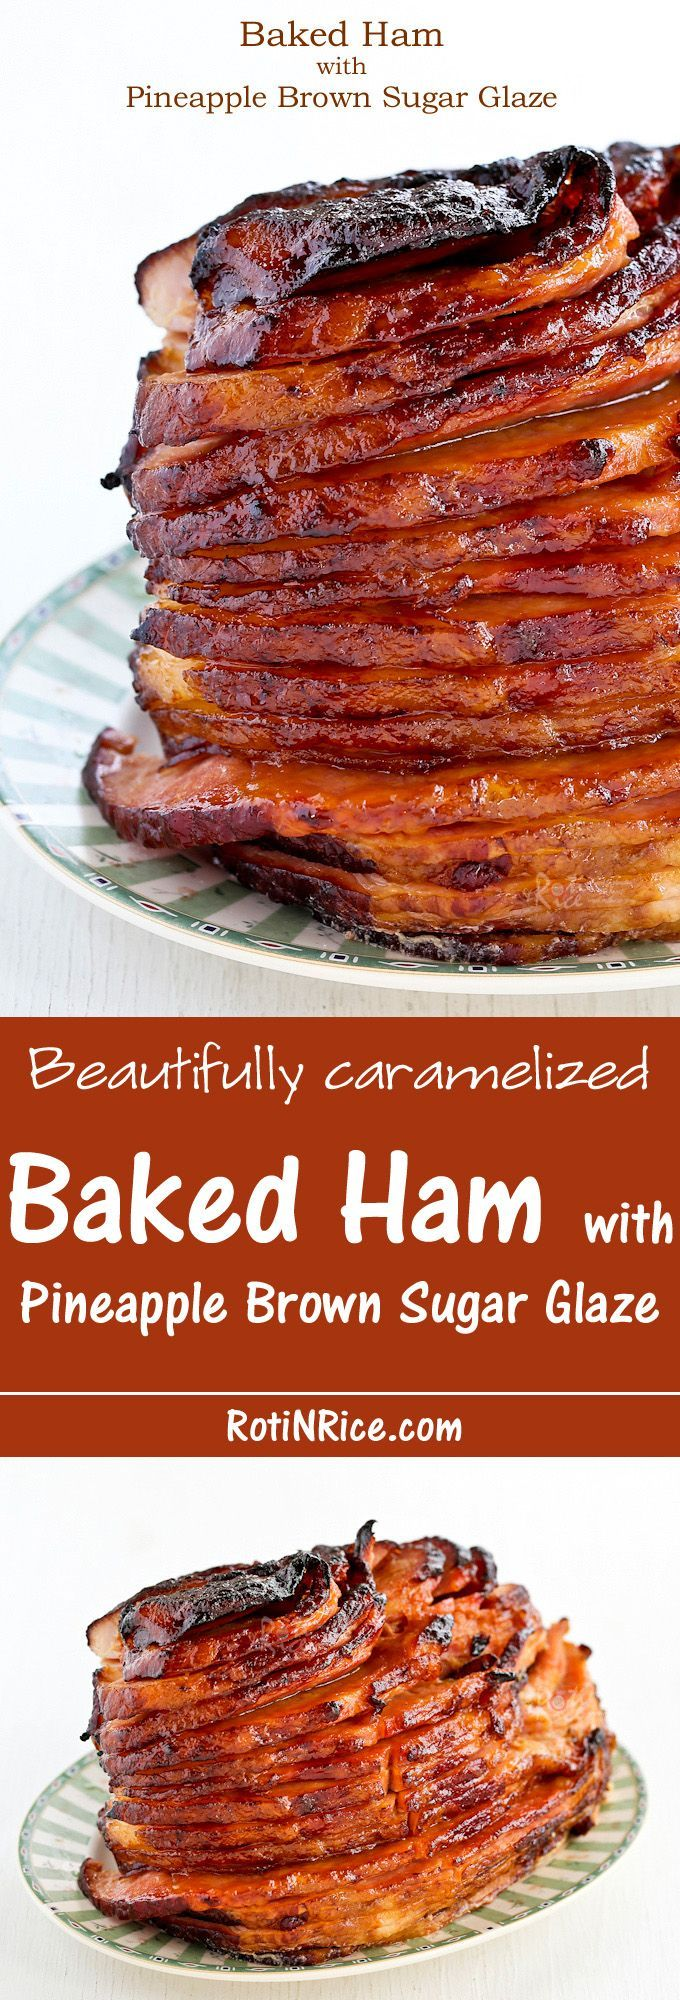 Beautifully caramelized Baked Ham with Pineapple Brown Sugar Glaze  // Jamón glaseado  con piña